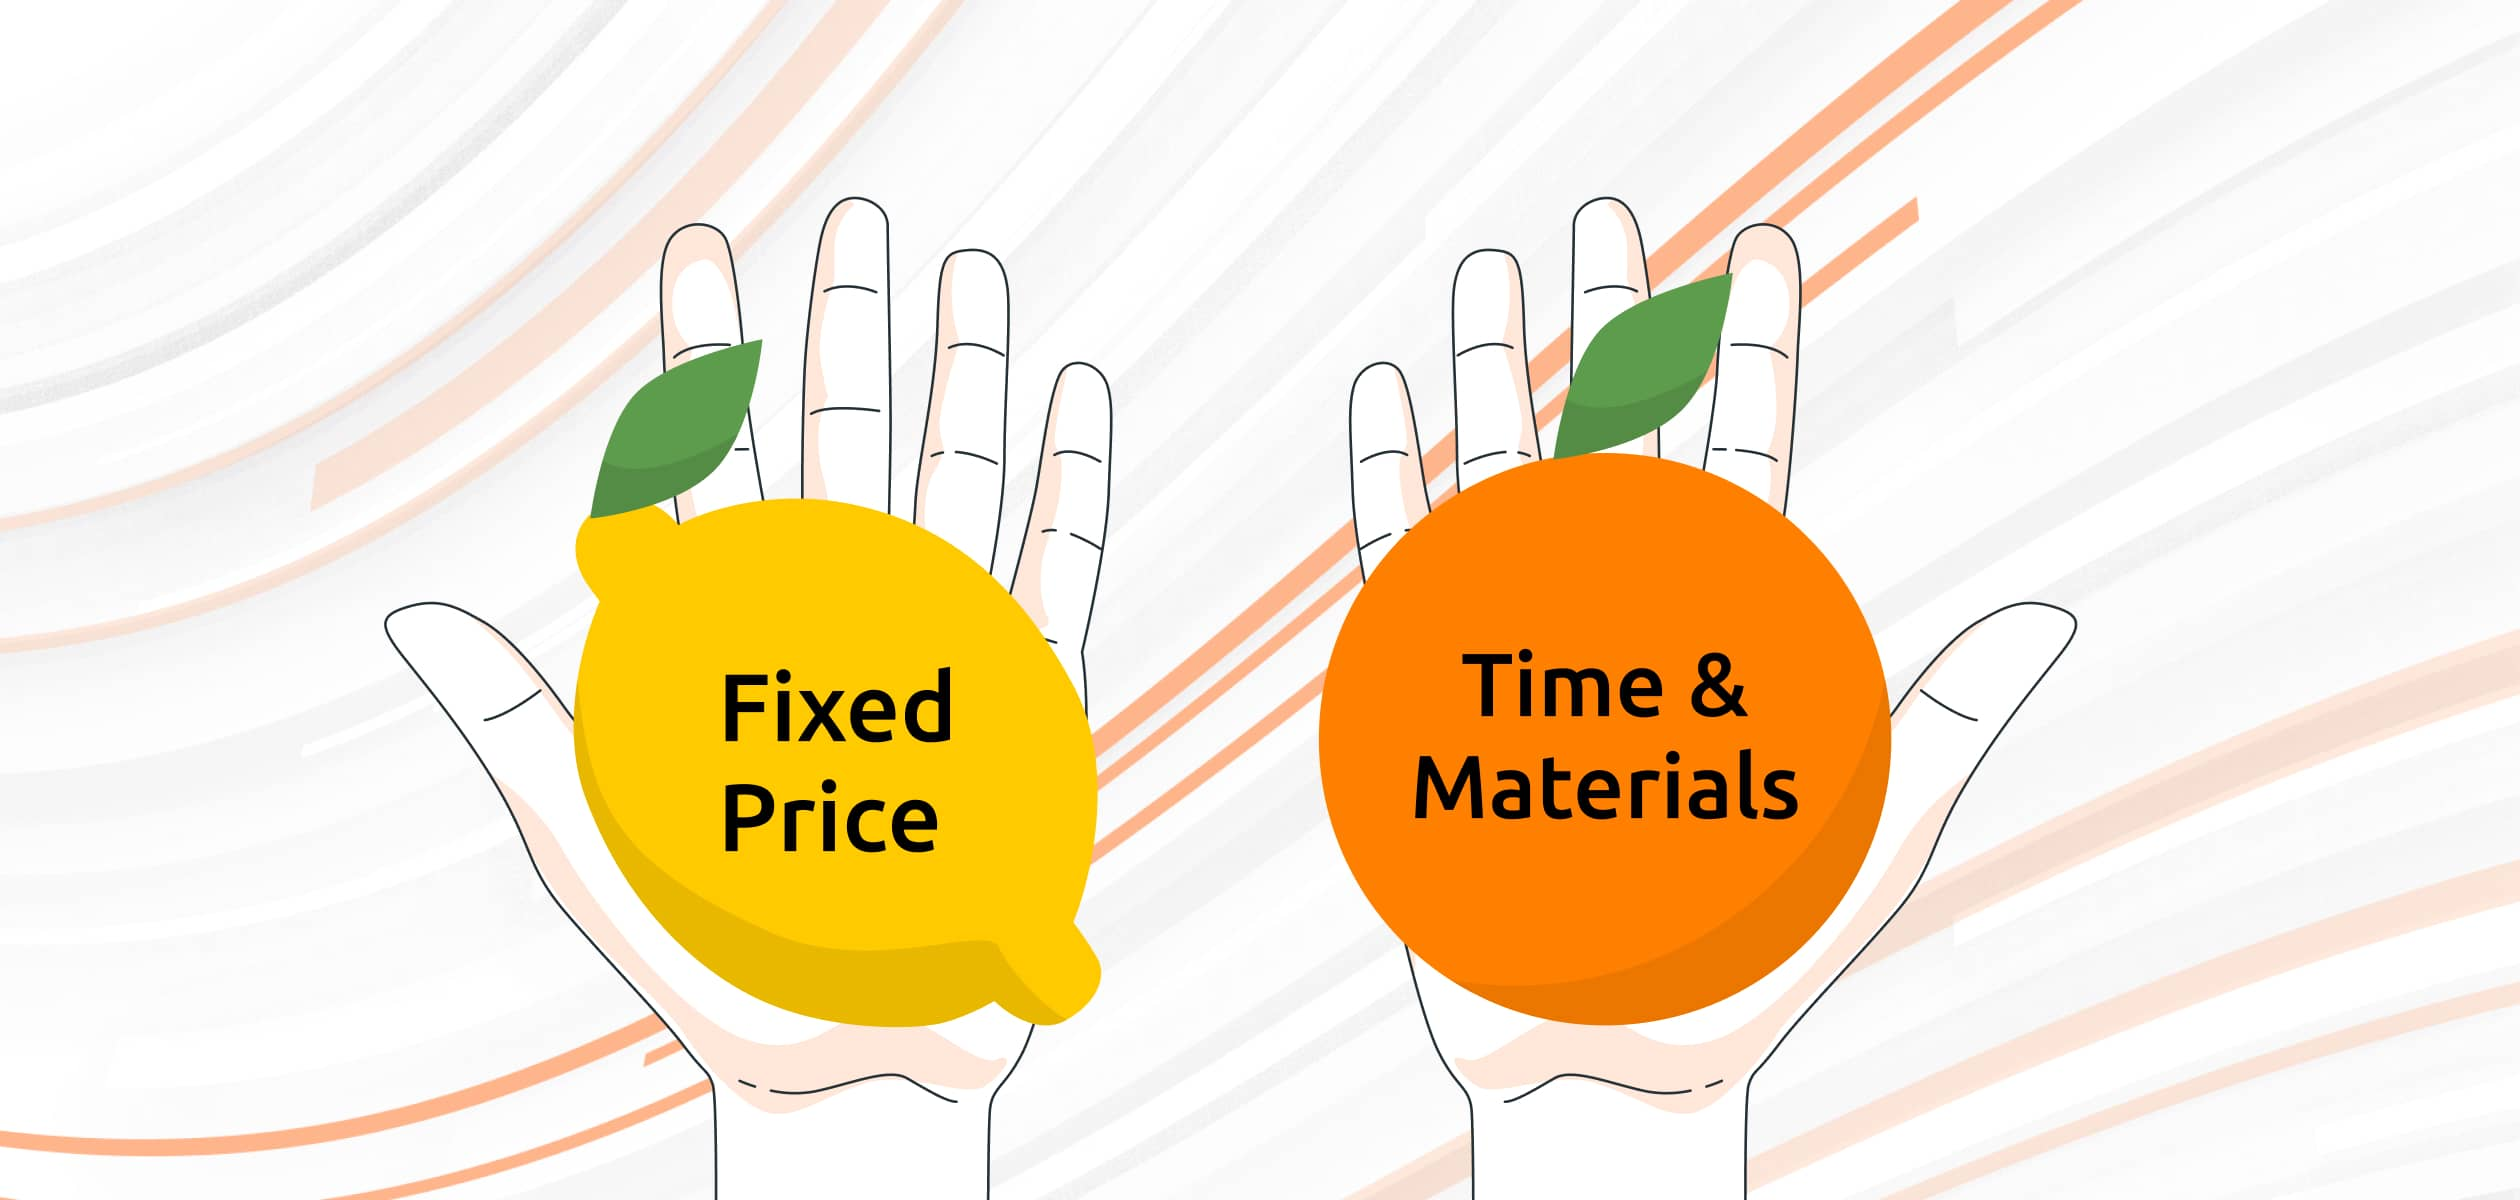 Deference between time and materials and fixed price